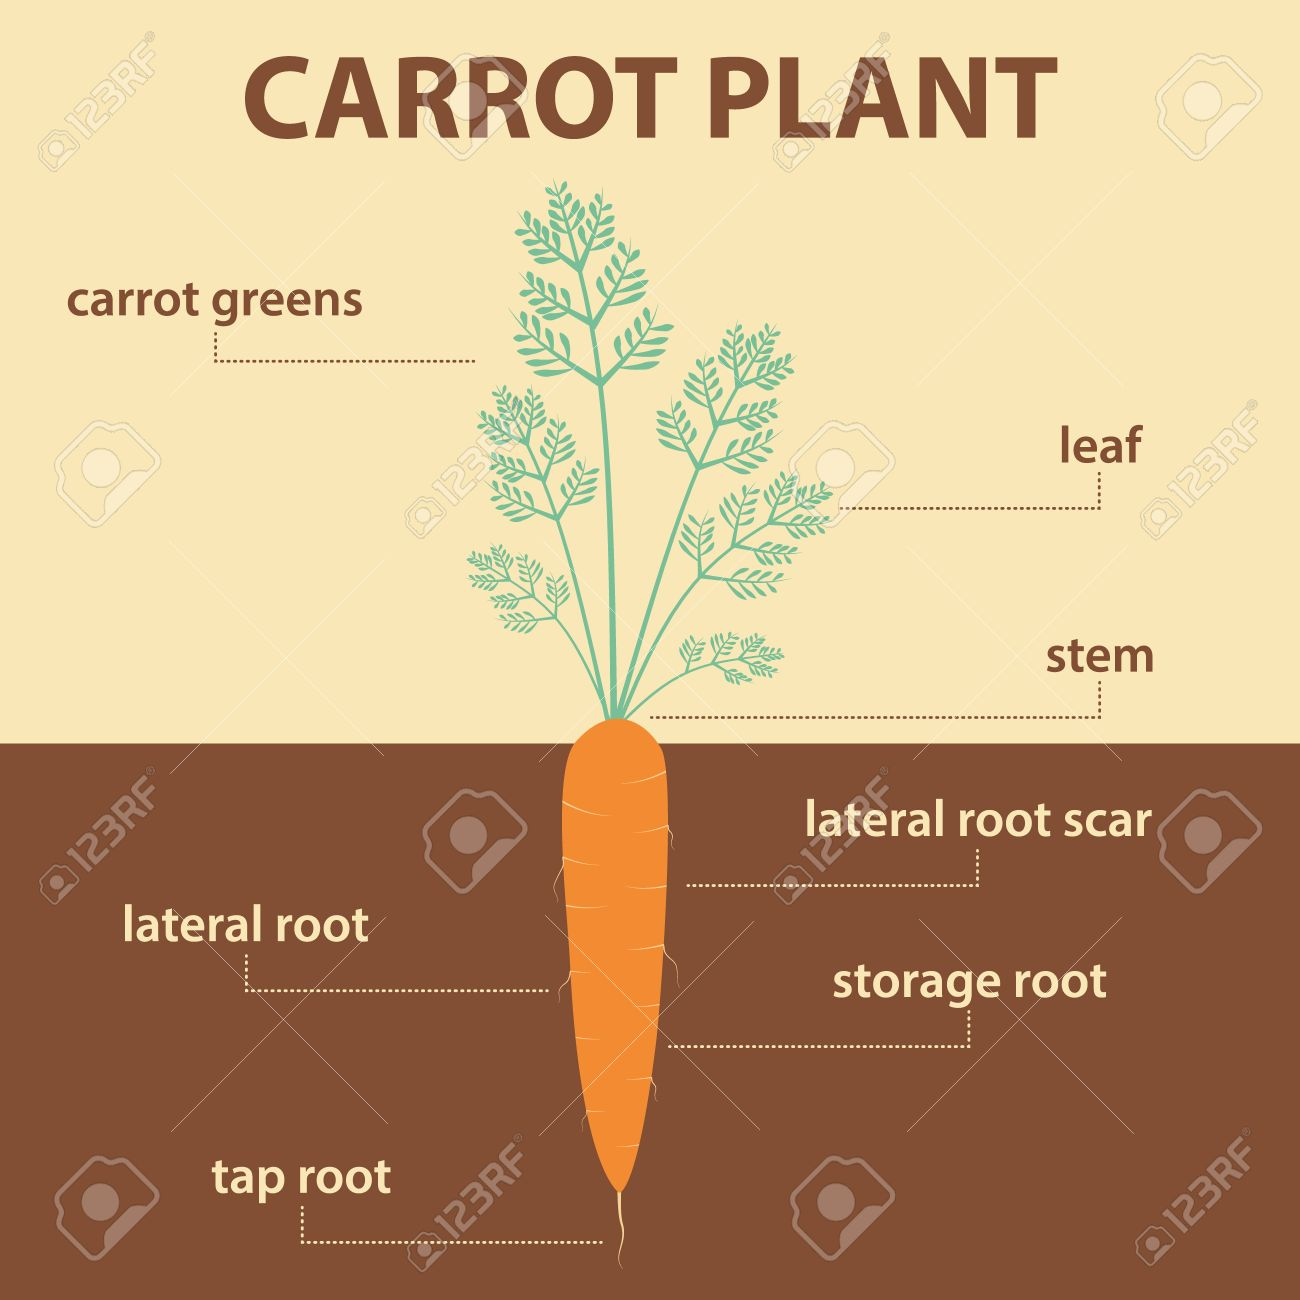 carrot plant diagram 6 pin trailer harness wiring vector showing parts of whole agricultural infographic scheme with labels for education biology root vegetables